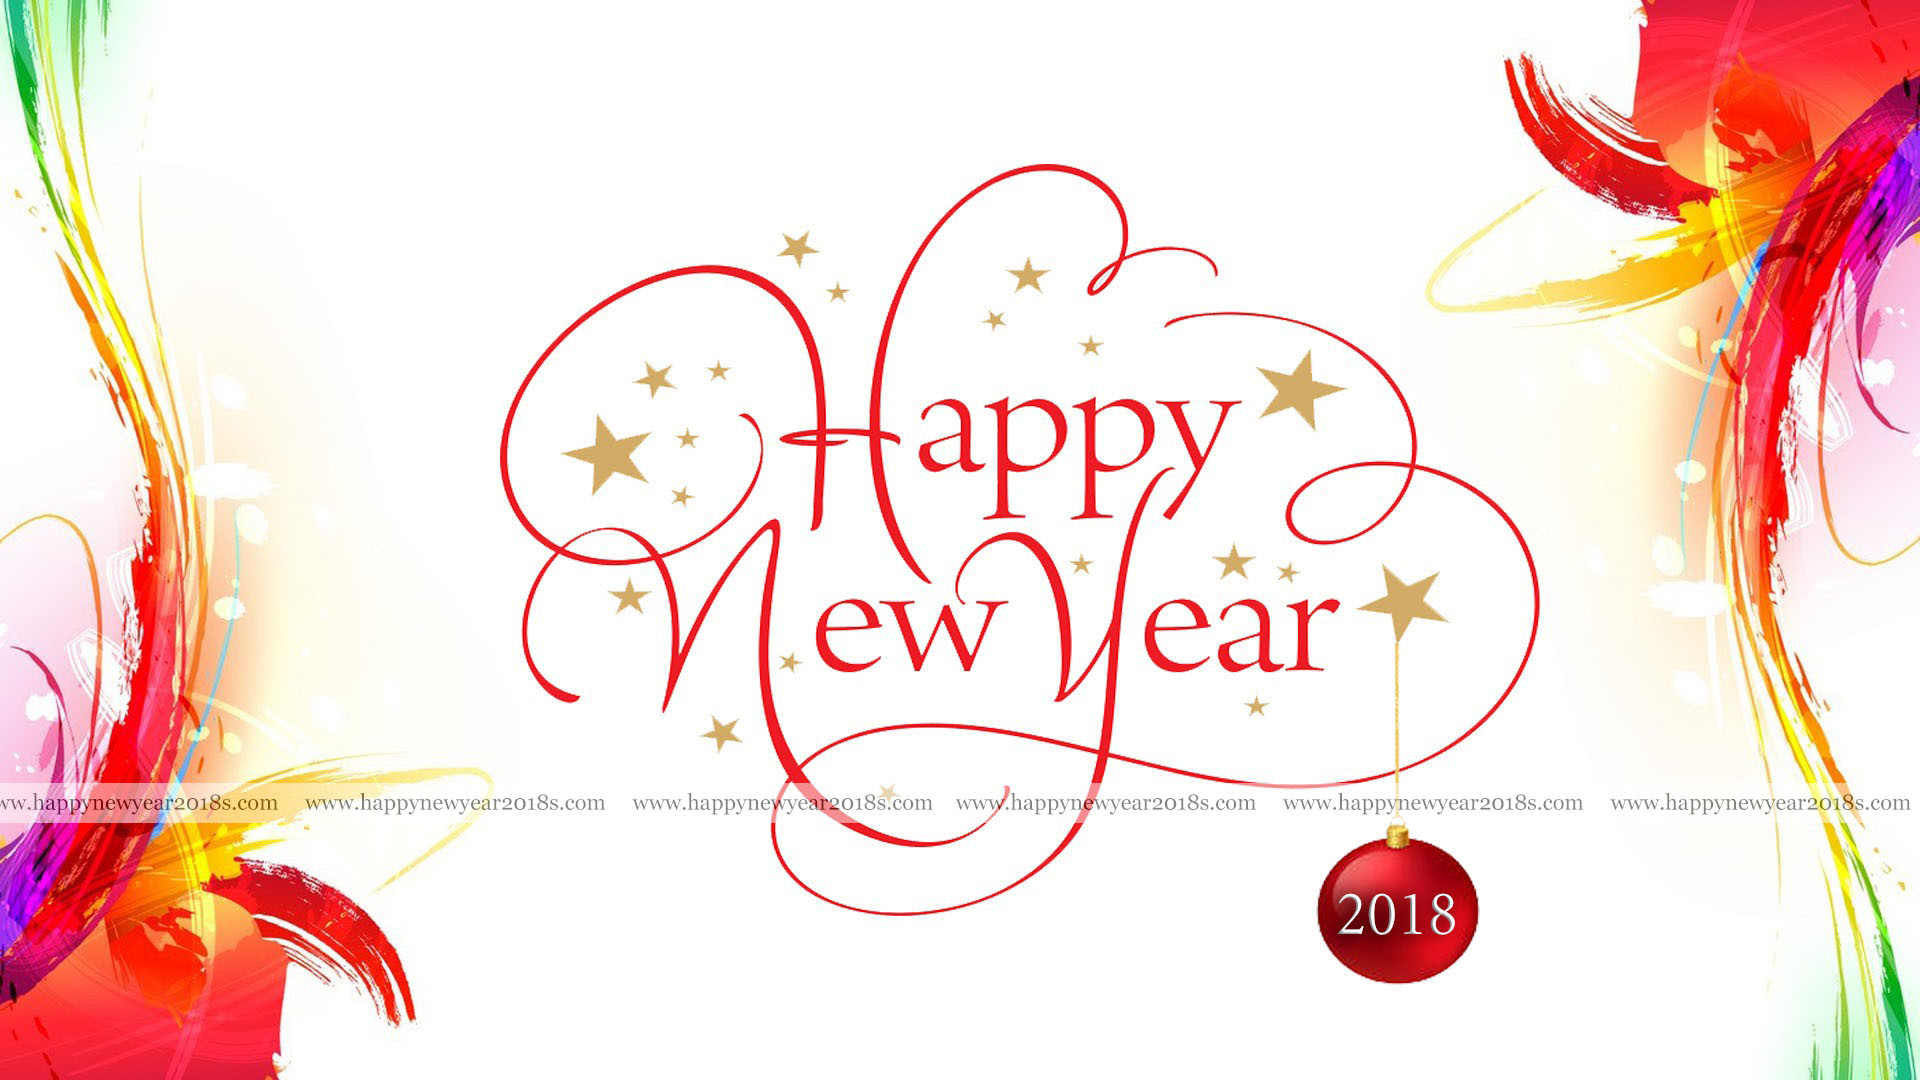 … Pictures Happy New Year 2018 HD Wallpaper, Images, …